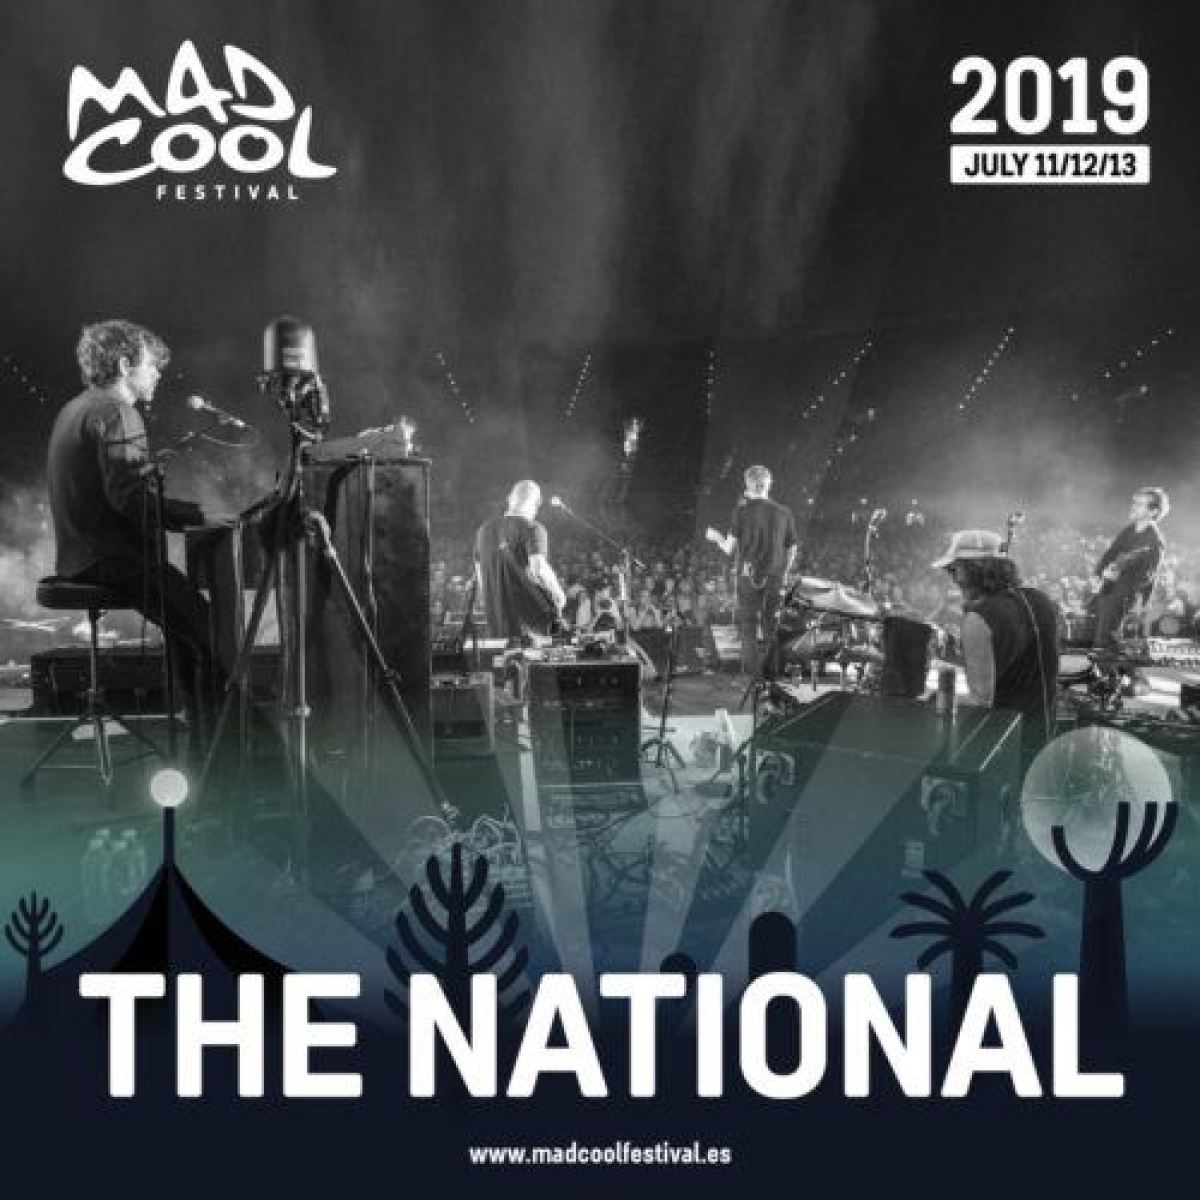 The National Mad Cool Festival 2019